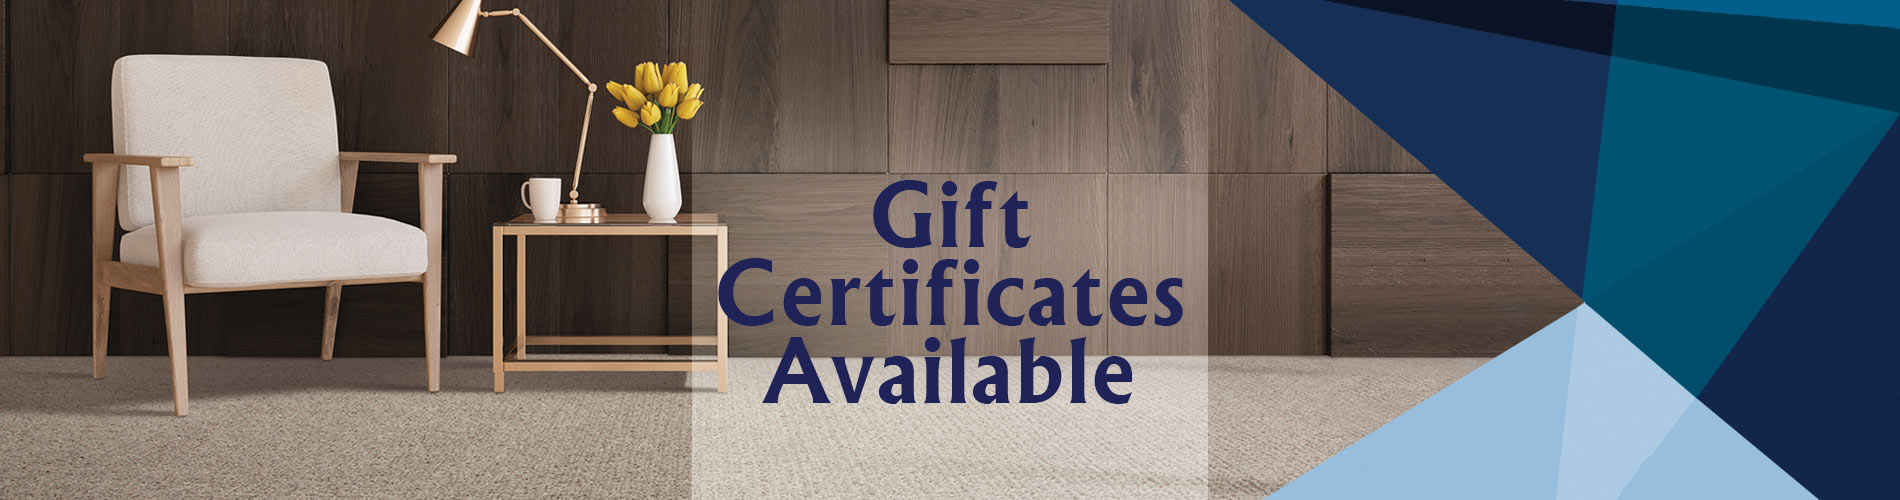 We have gift certificates available for purchase